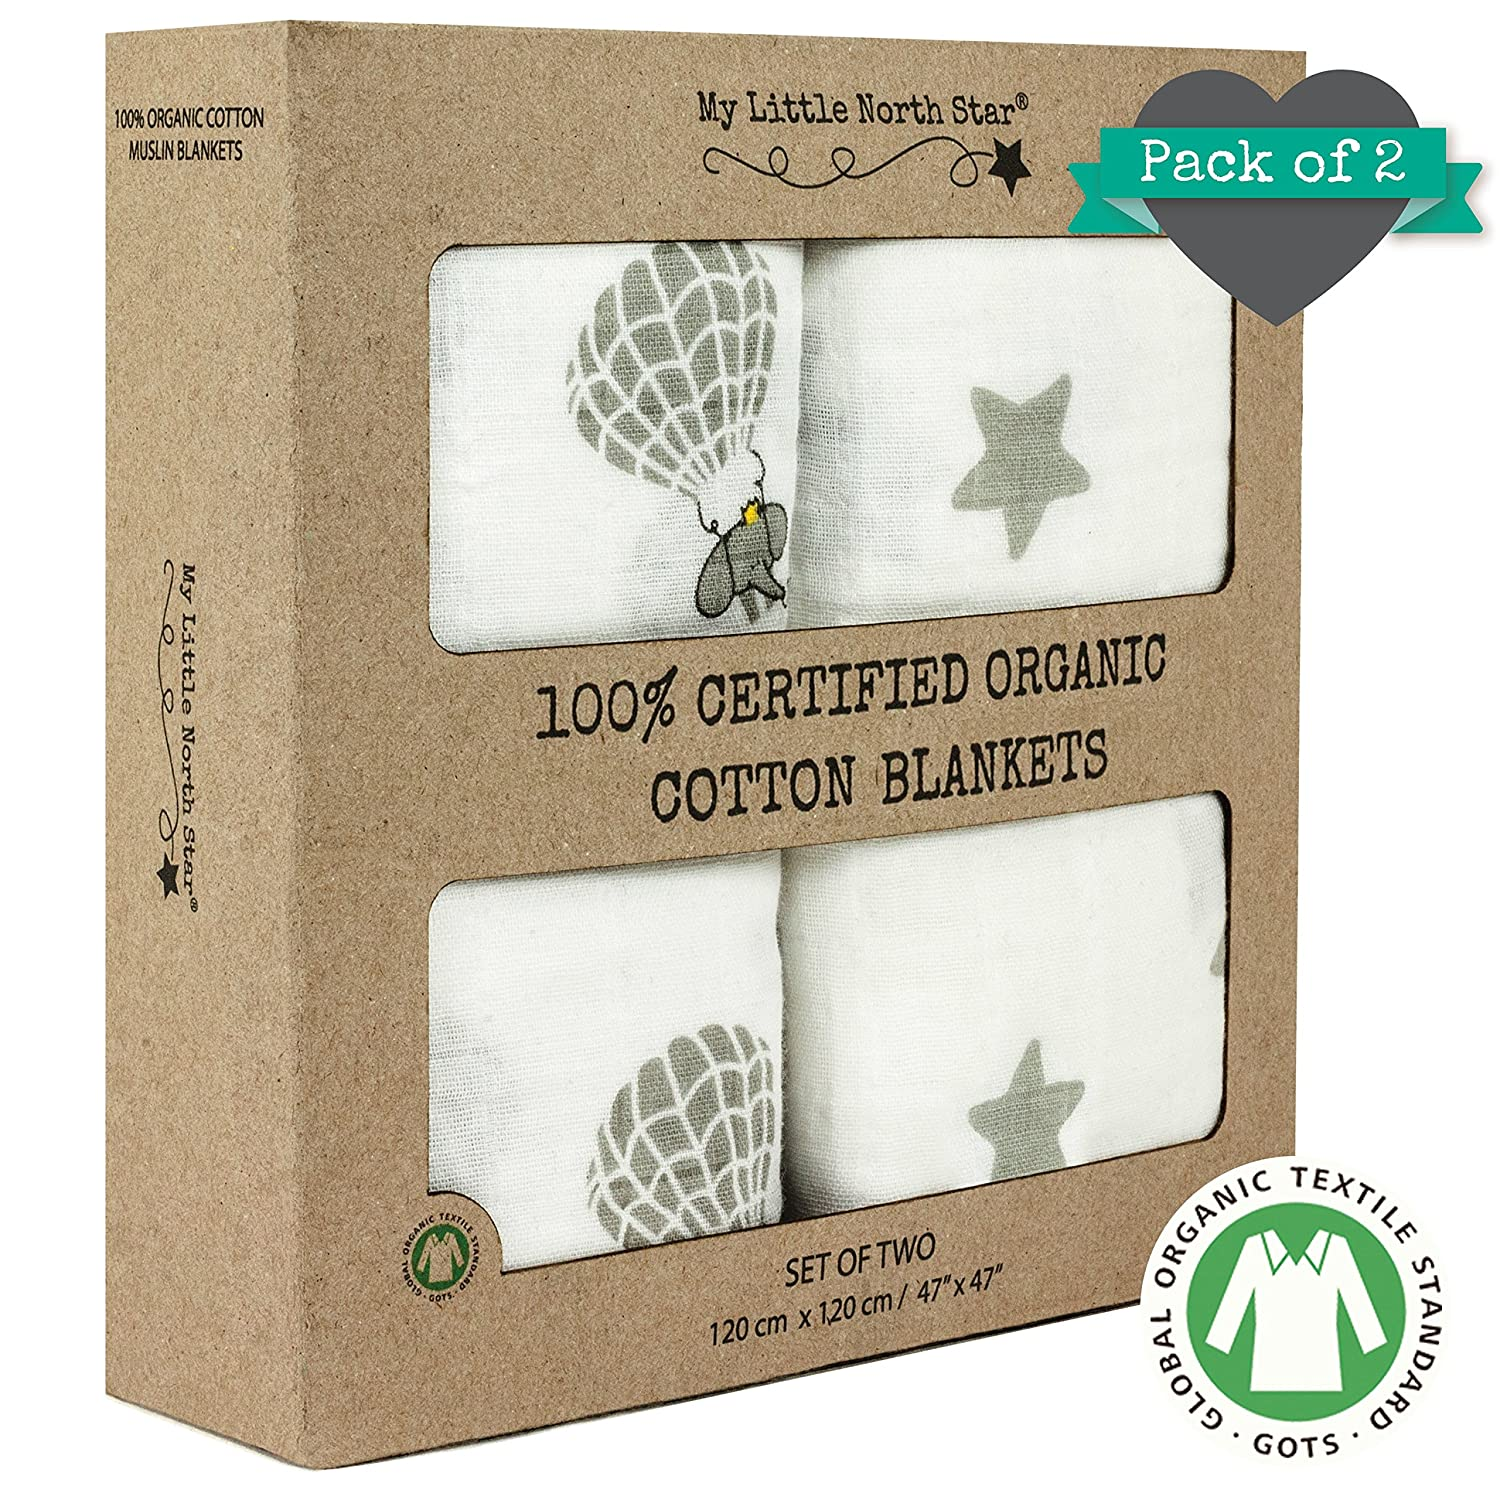 Swaddle Blankets - 100% ORGANIC COTTON - Soft and Hypoallergenic – 2 pack - Unisex My Little North Star